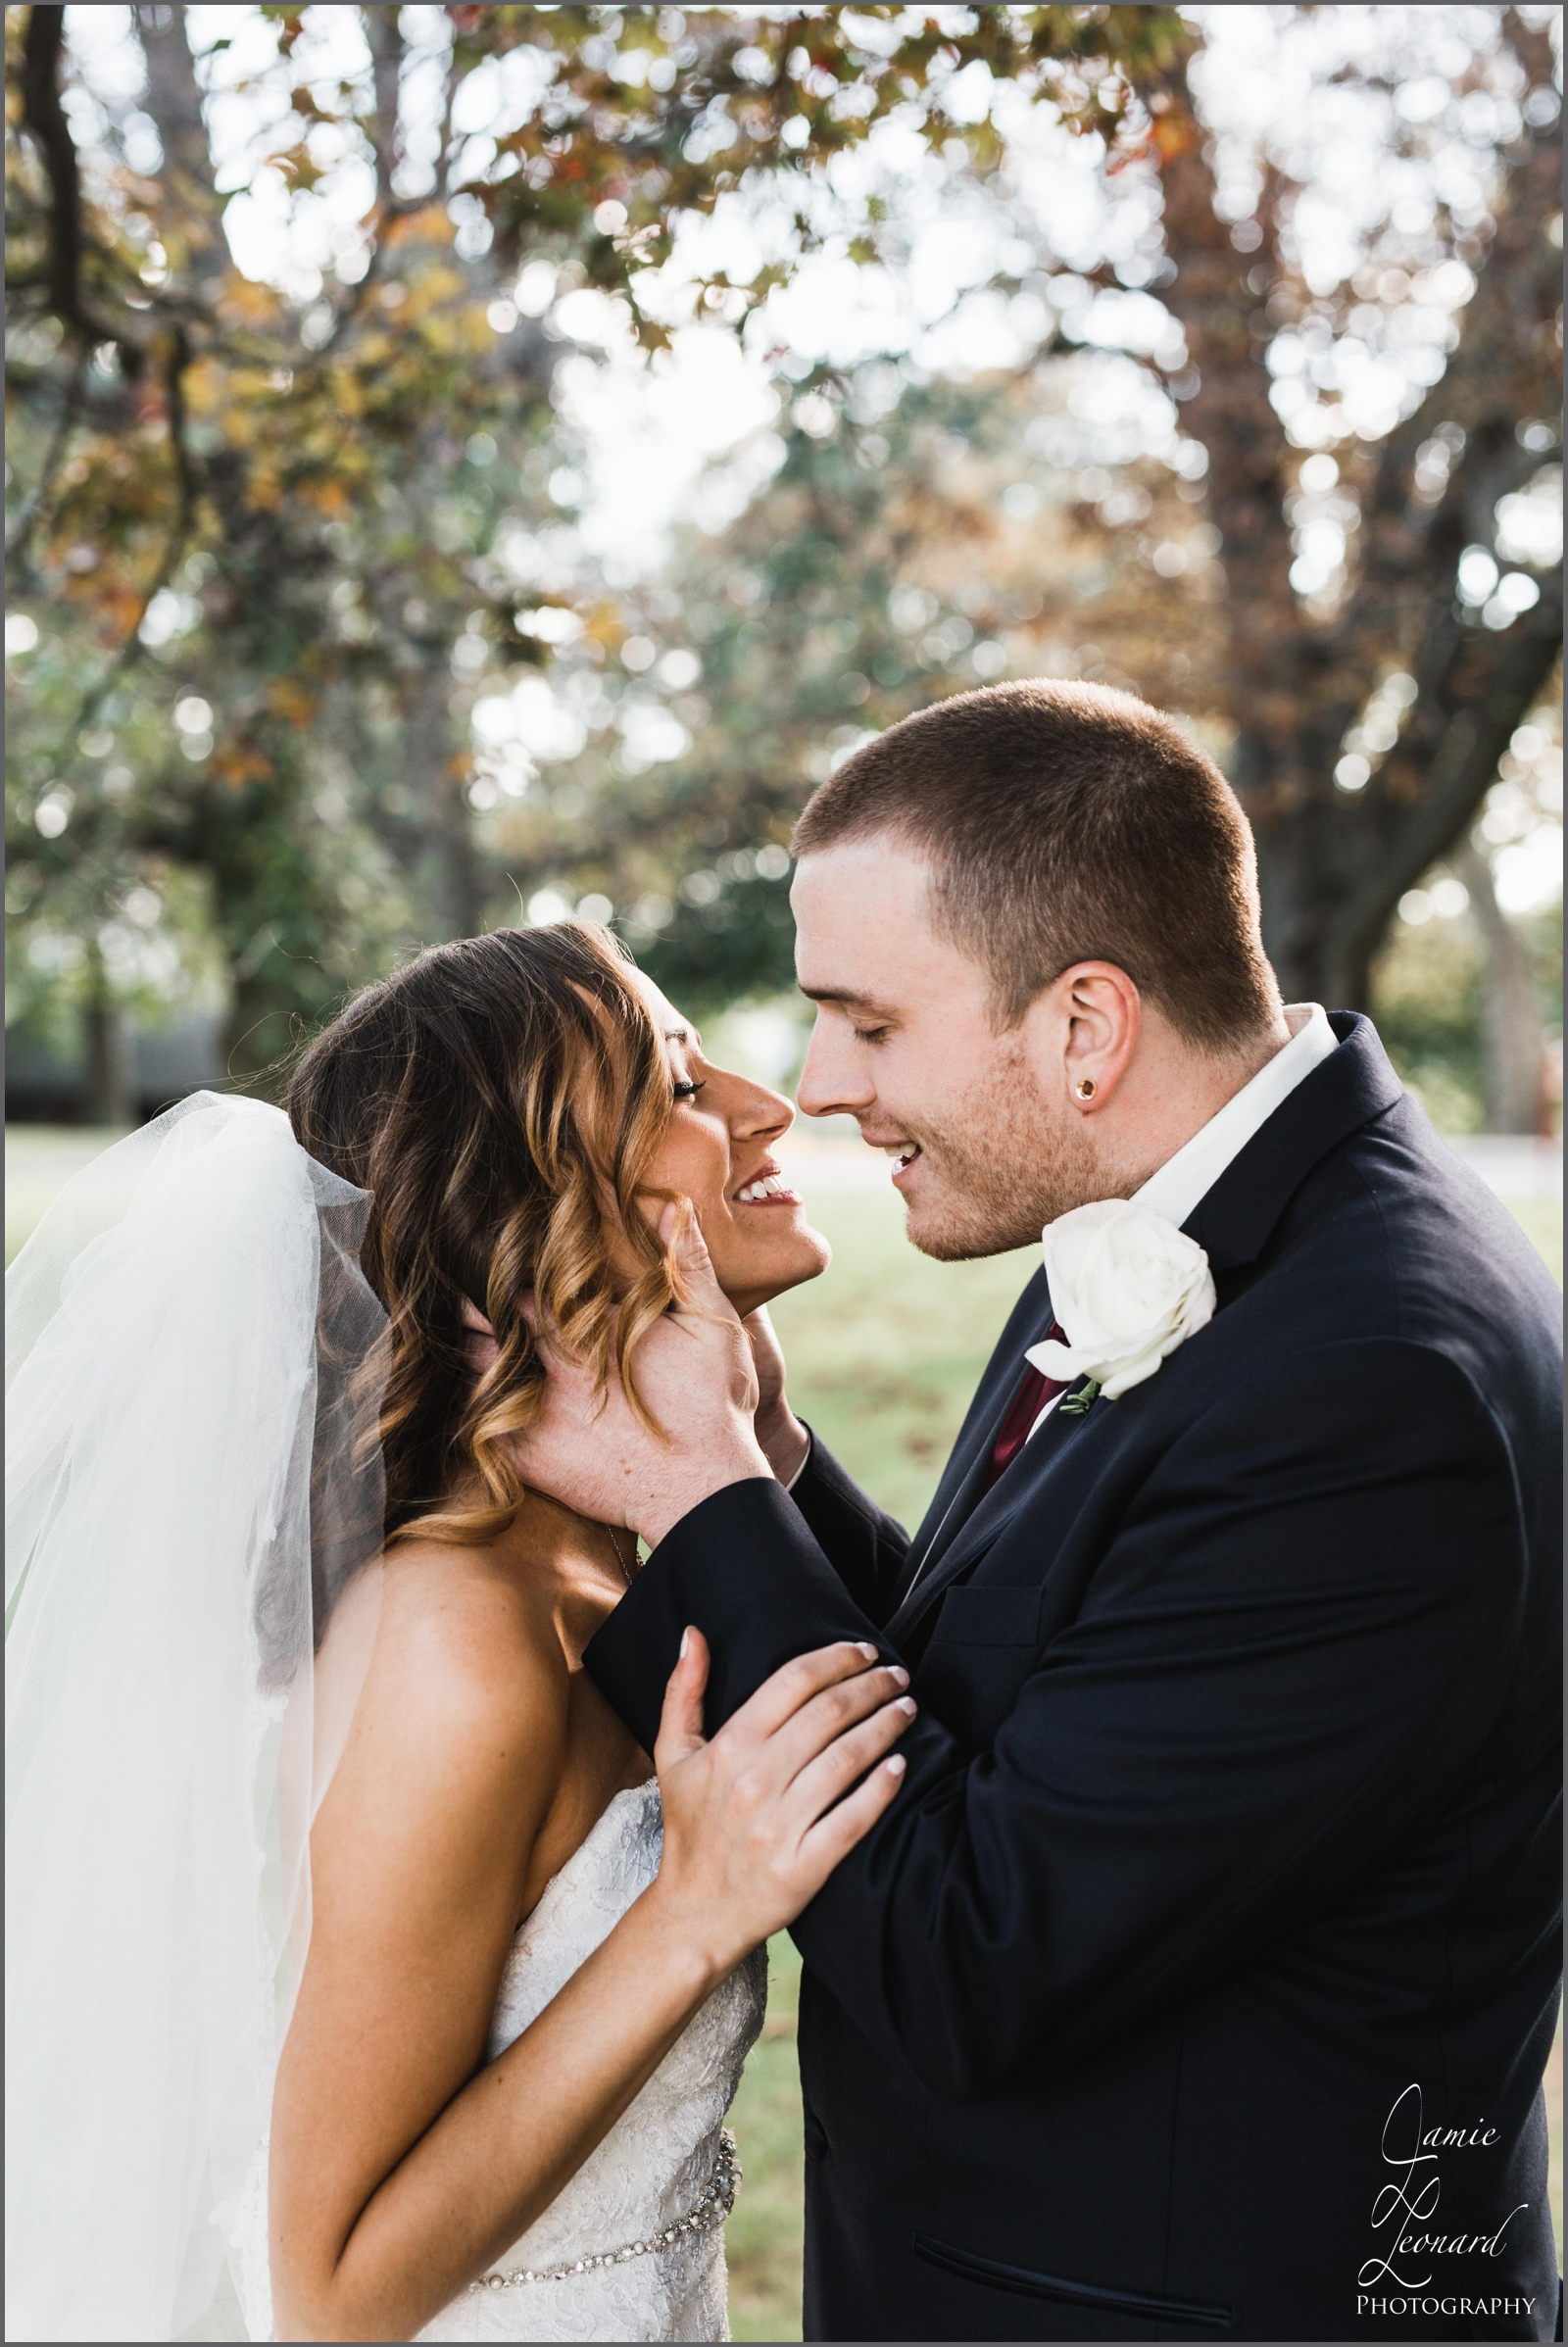 wedding_seton_hill_church_lakeview_greensburg_jamie_leonard_photography_photographer_engagement.jpg